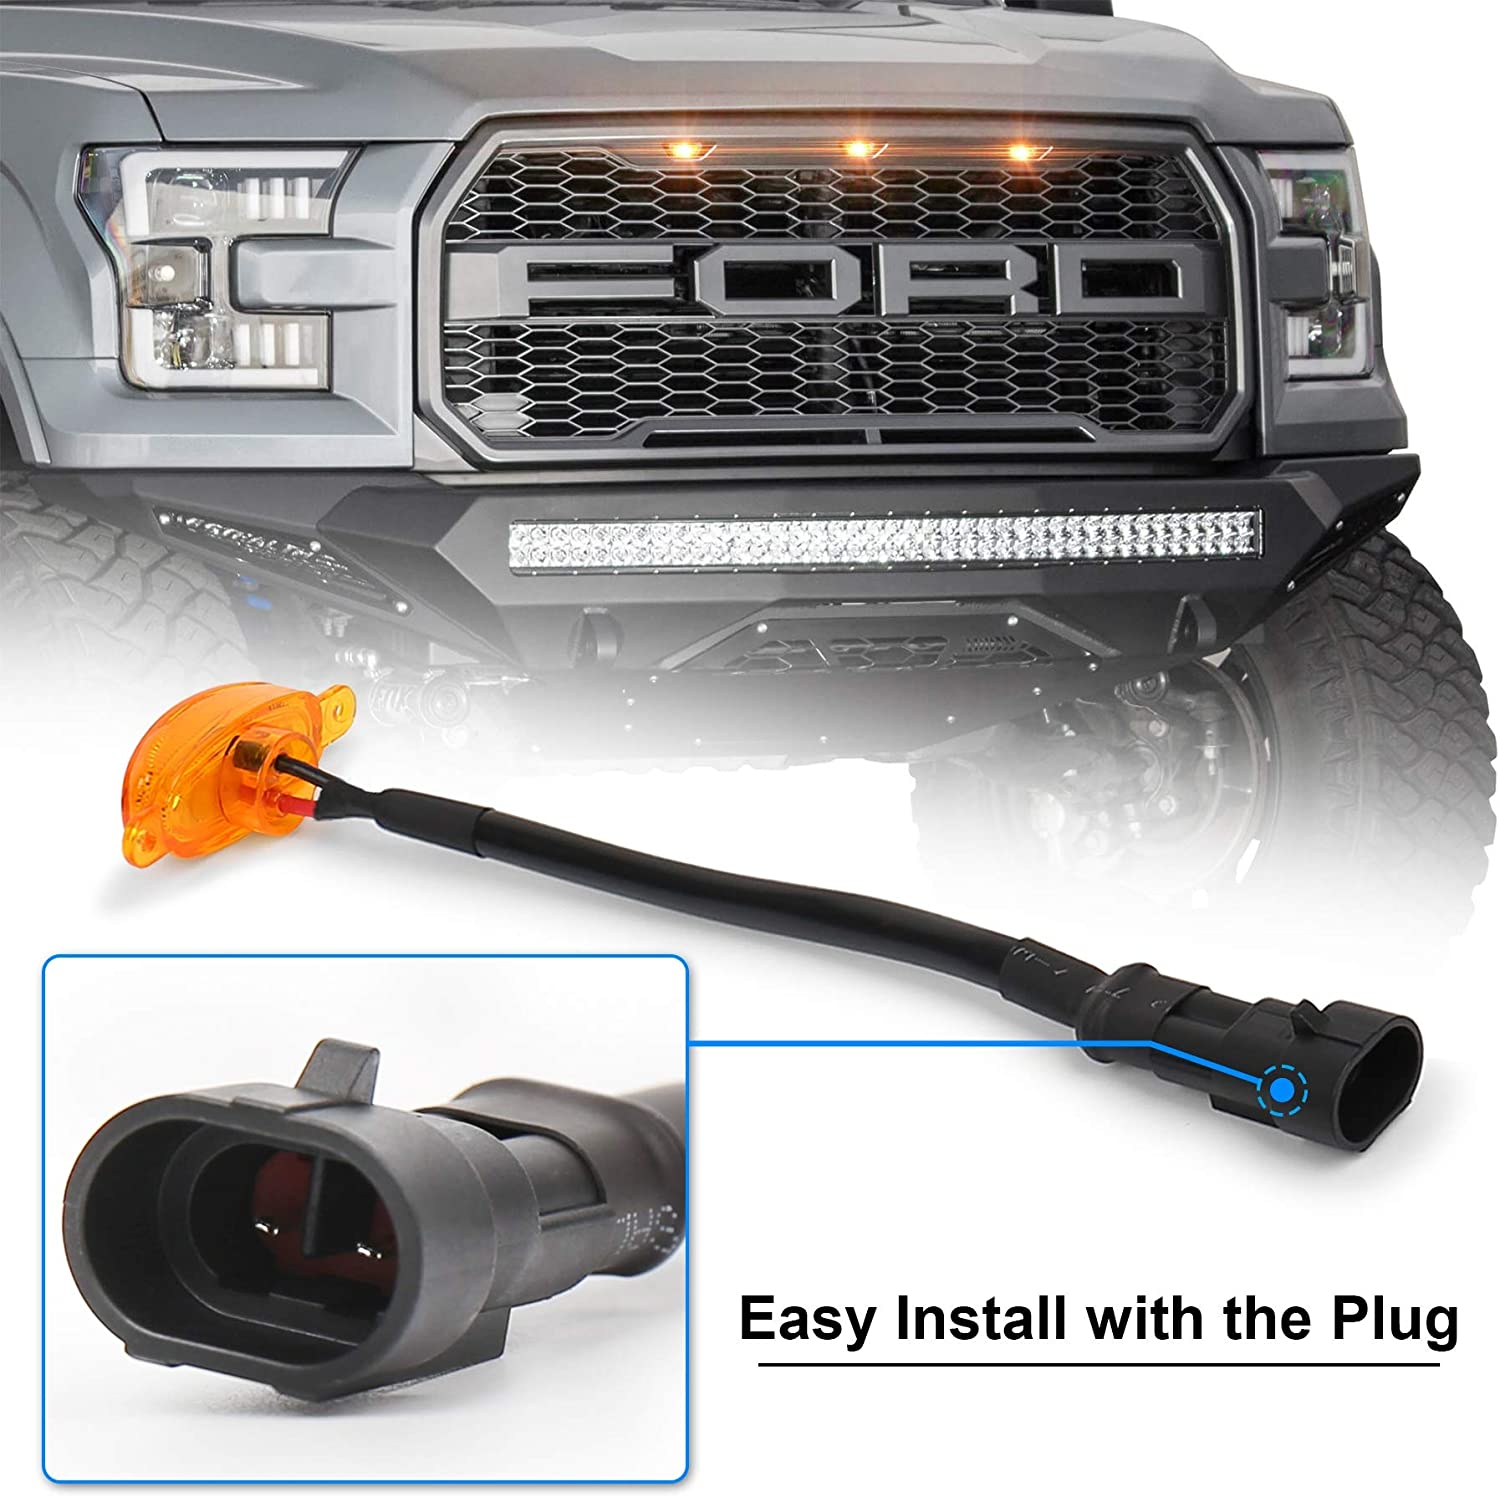 ZJUSDO Raptor Grill Lights Amber Waterproof Front Grille Lights Compatible with Ford F150 F250 F350 2004-2019